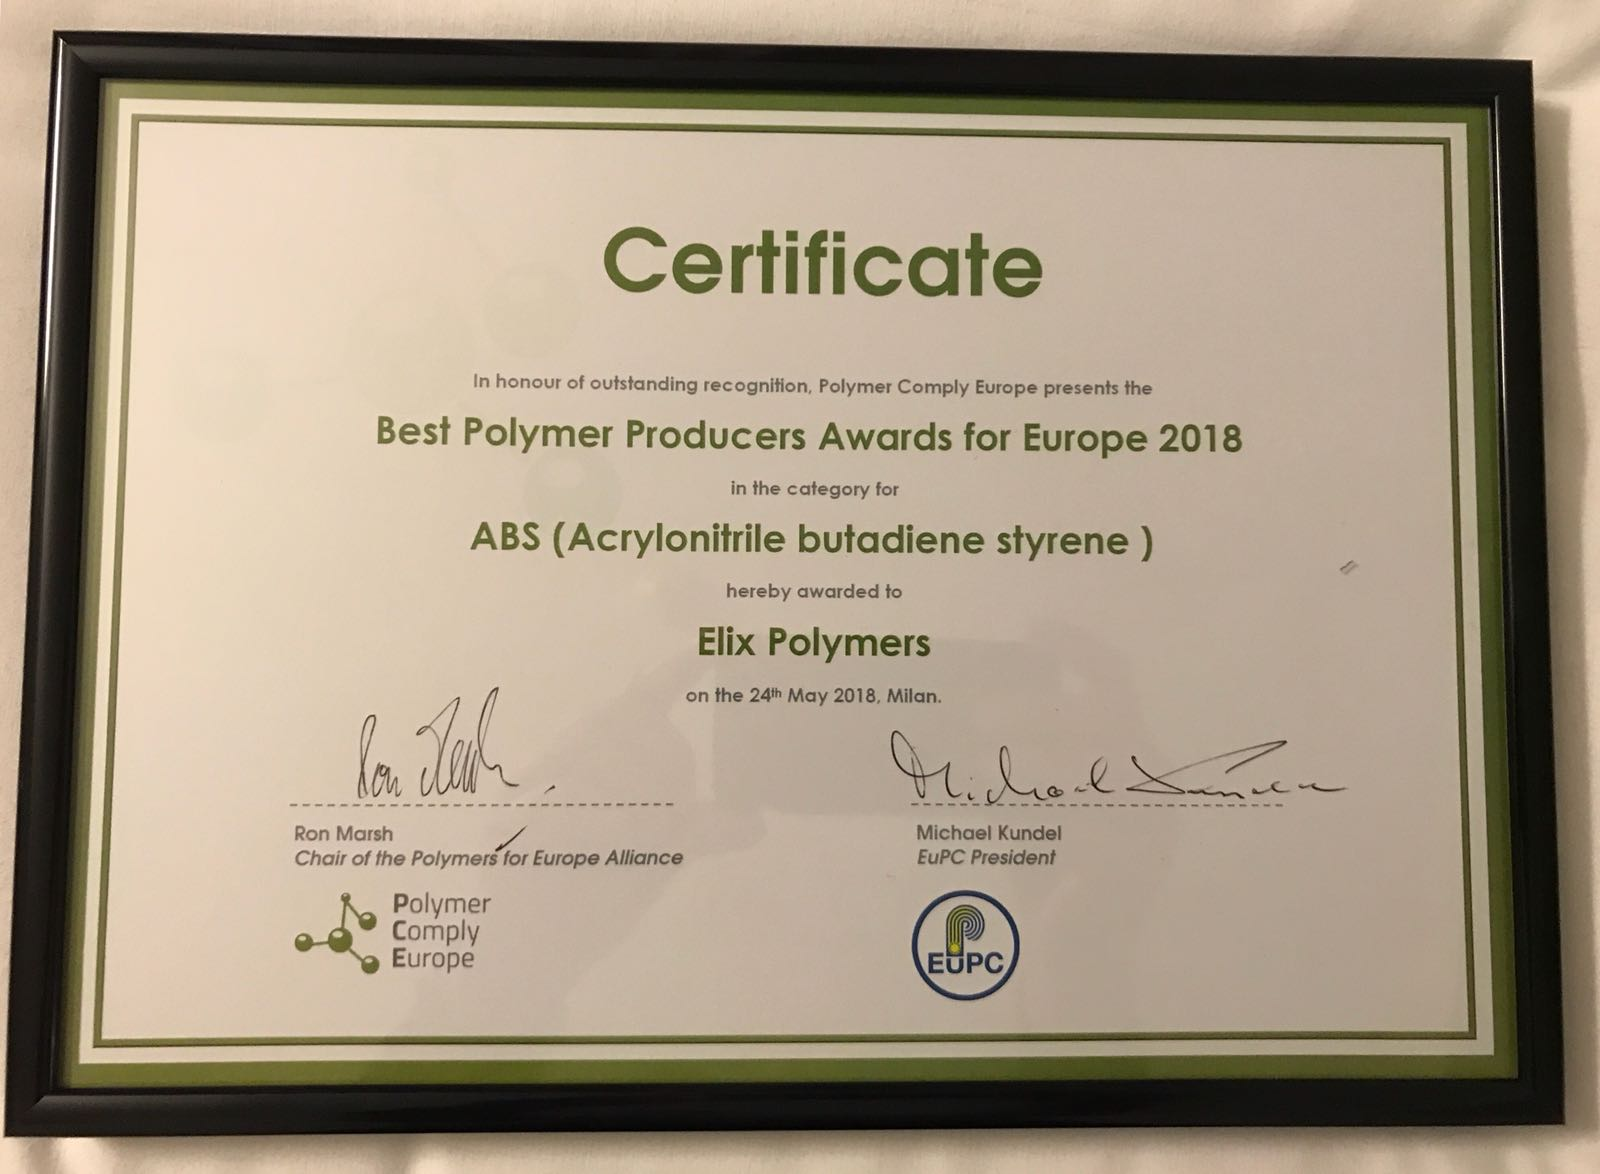 Best Polymer Producers Awards Europe 2018